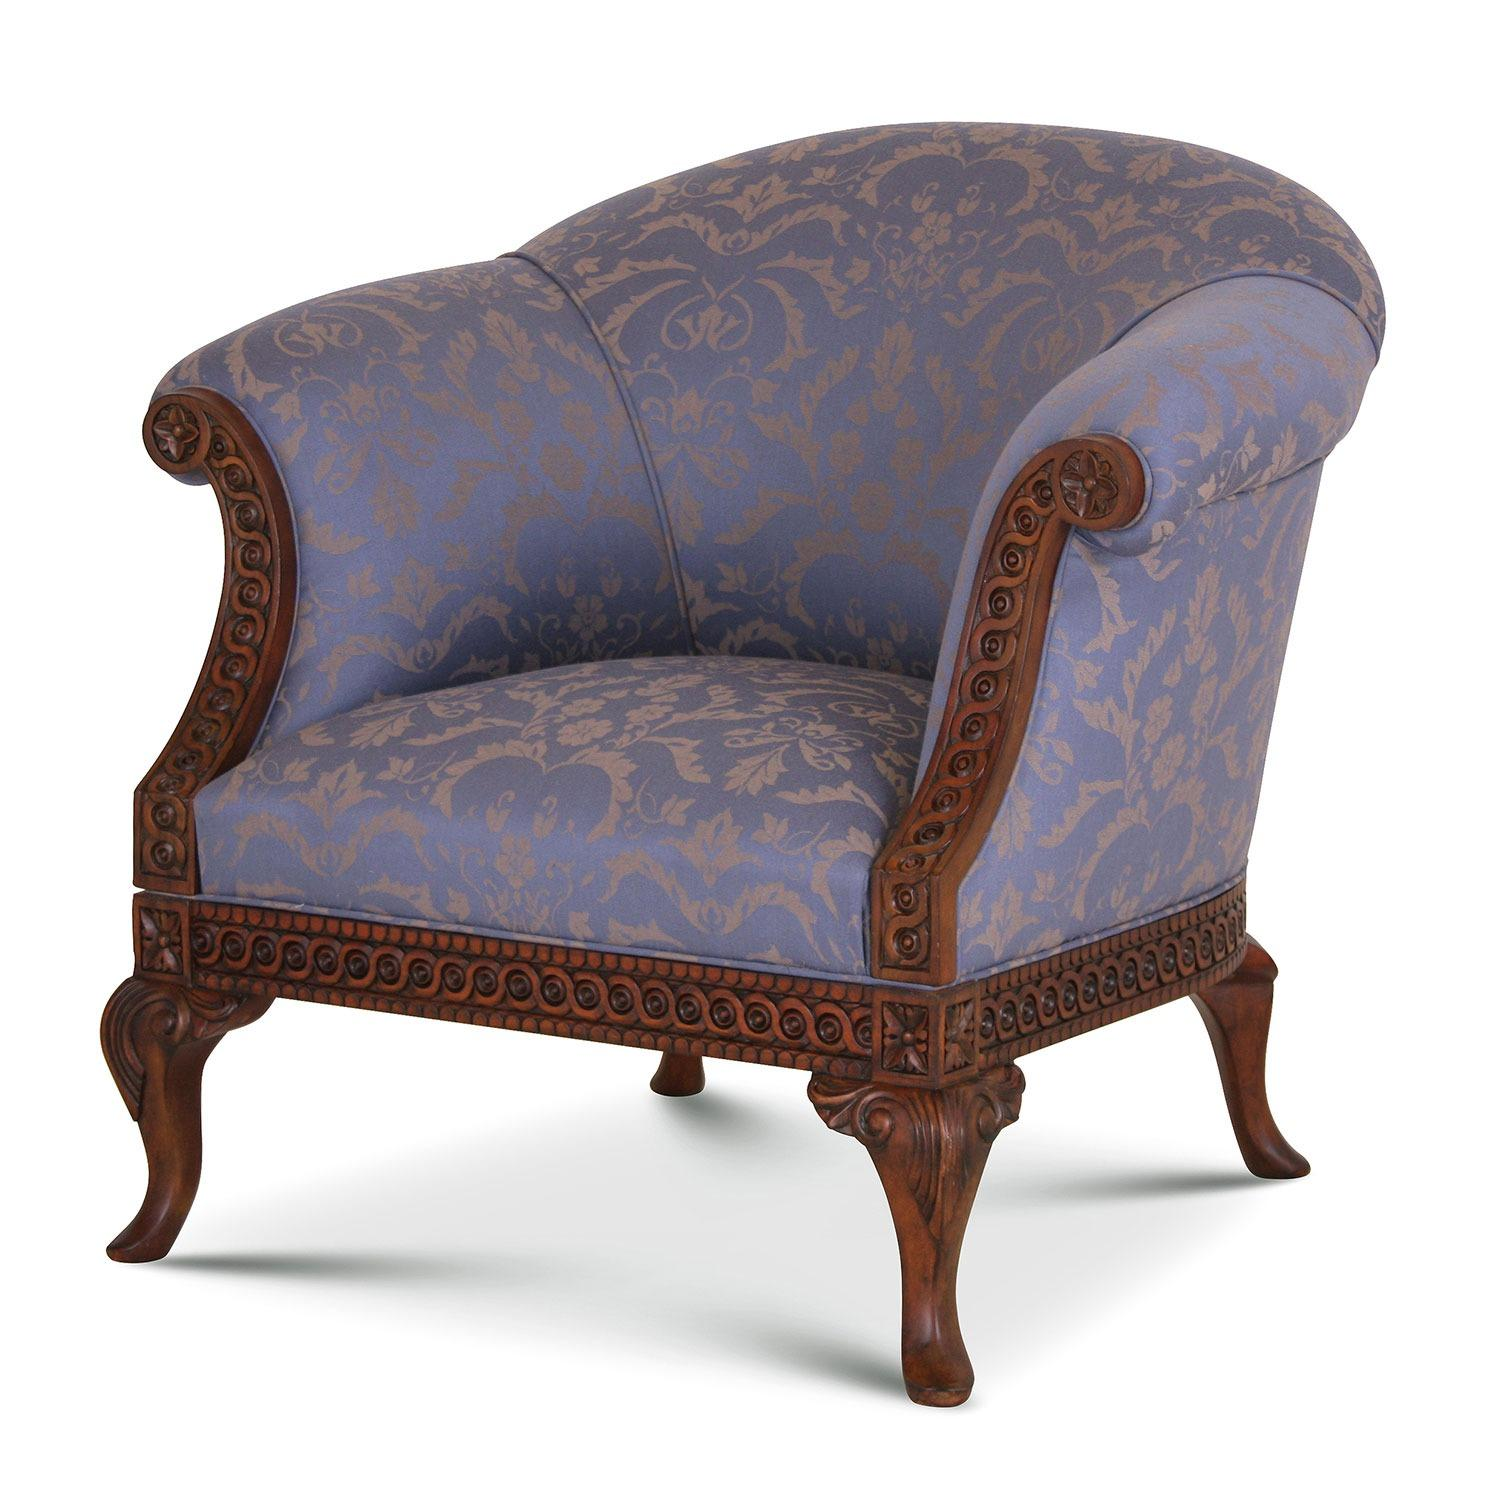 Damask Chair Pride Regency Style Chair In Blue Pleasley Damask